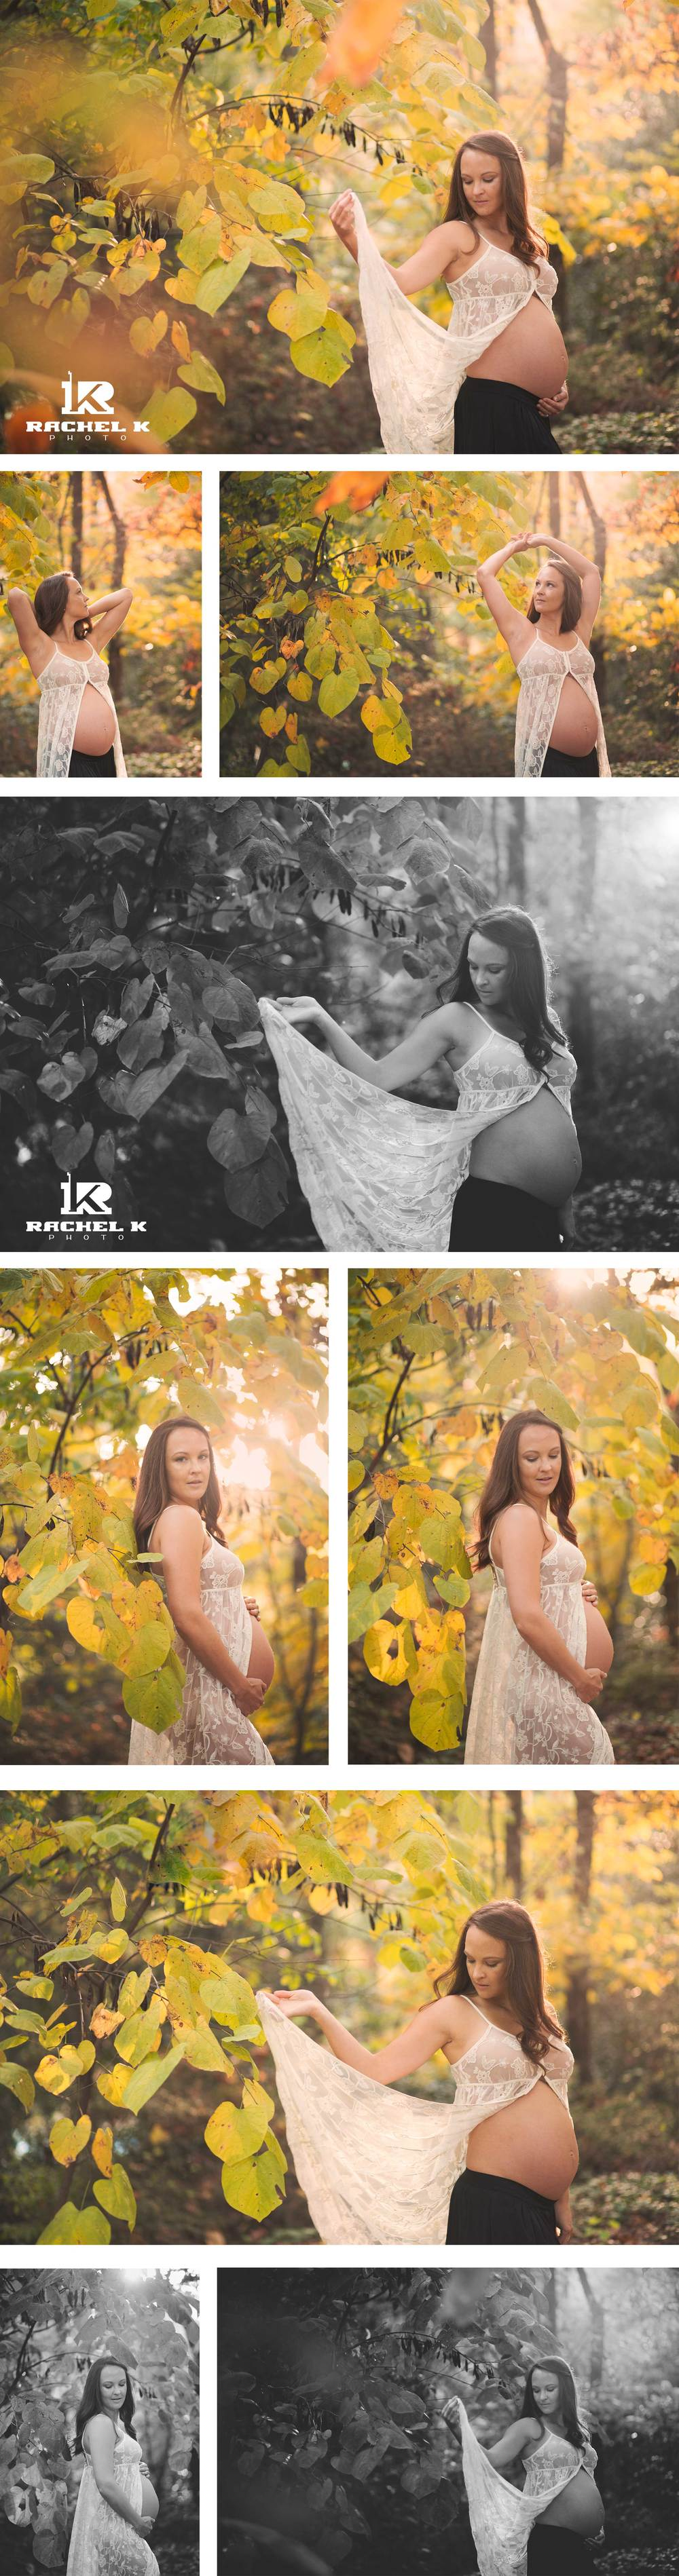 Fall outdoor maternity session in Virgina